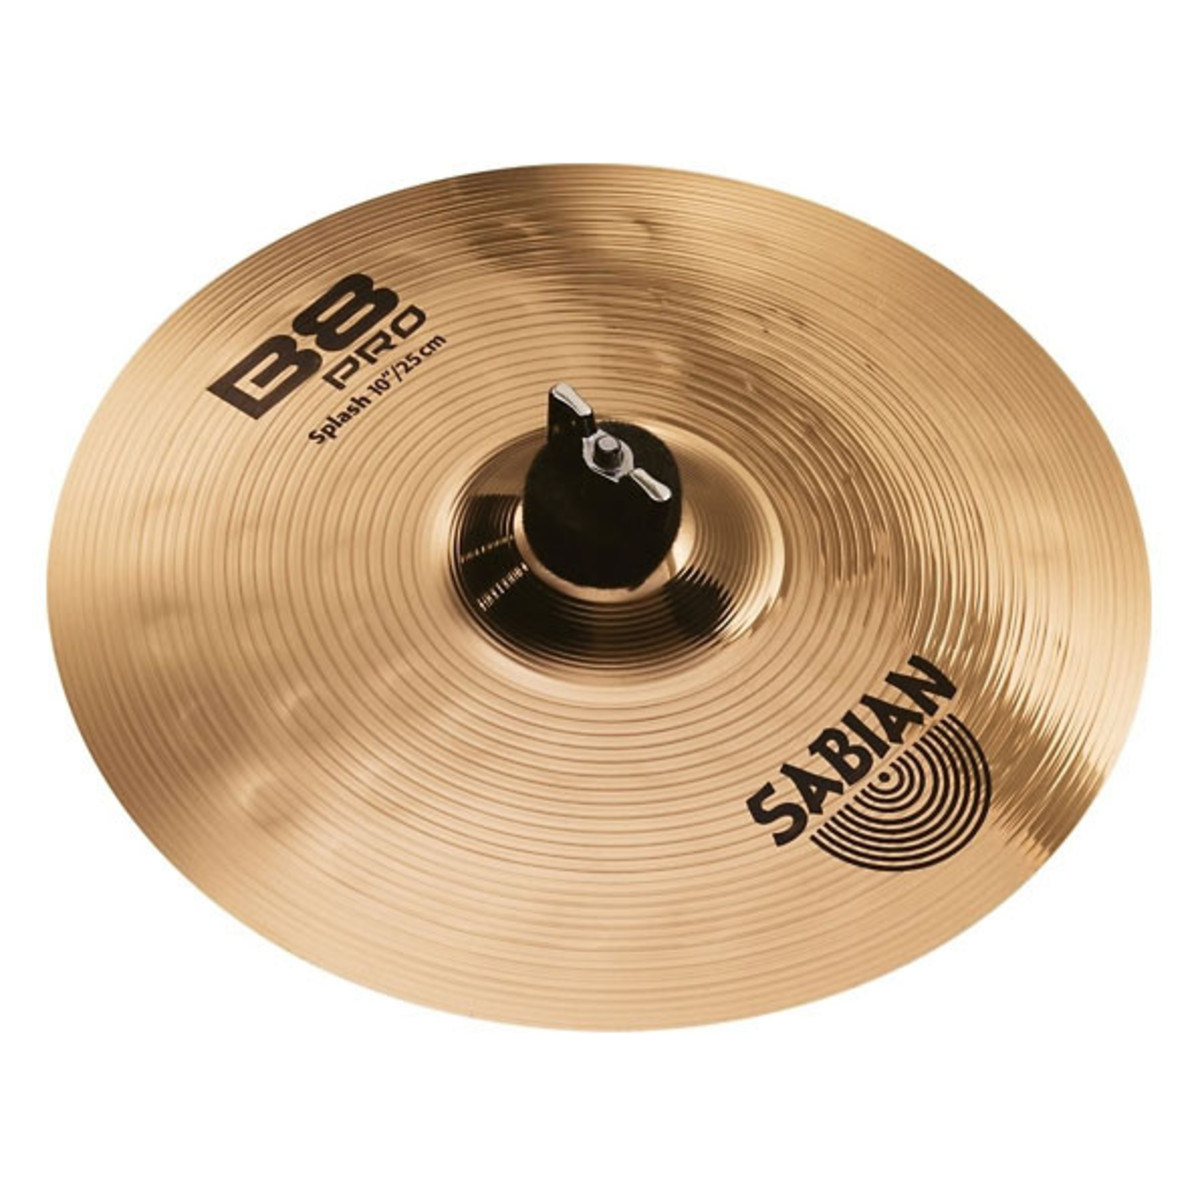 sabian b8 pro 10 39 39 splash cymbal at. Black Bedroom Furniture Sets. Home Design Ideas